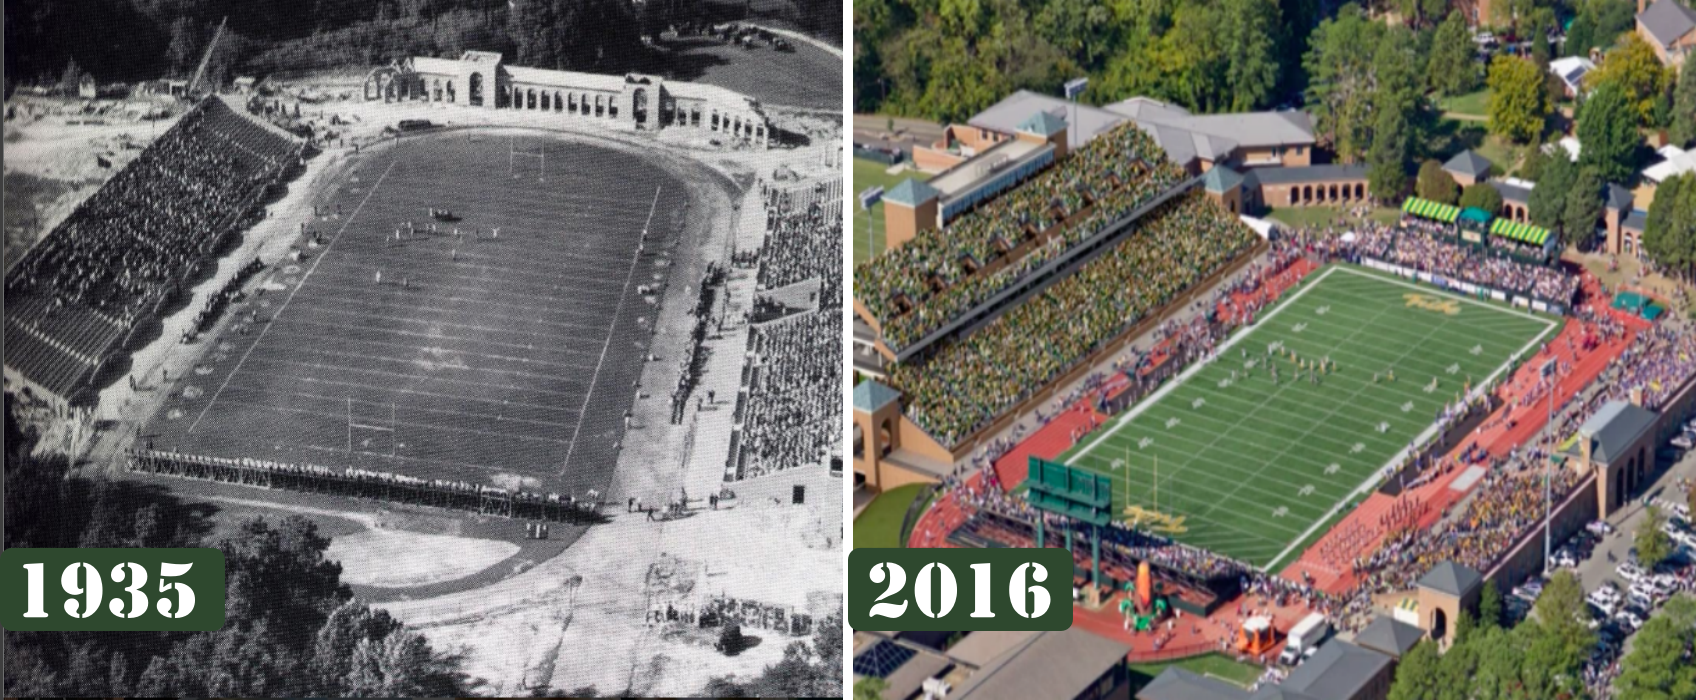 Zable Stadium Renovations Update The William And Mary Sports Blog